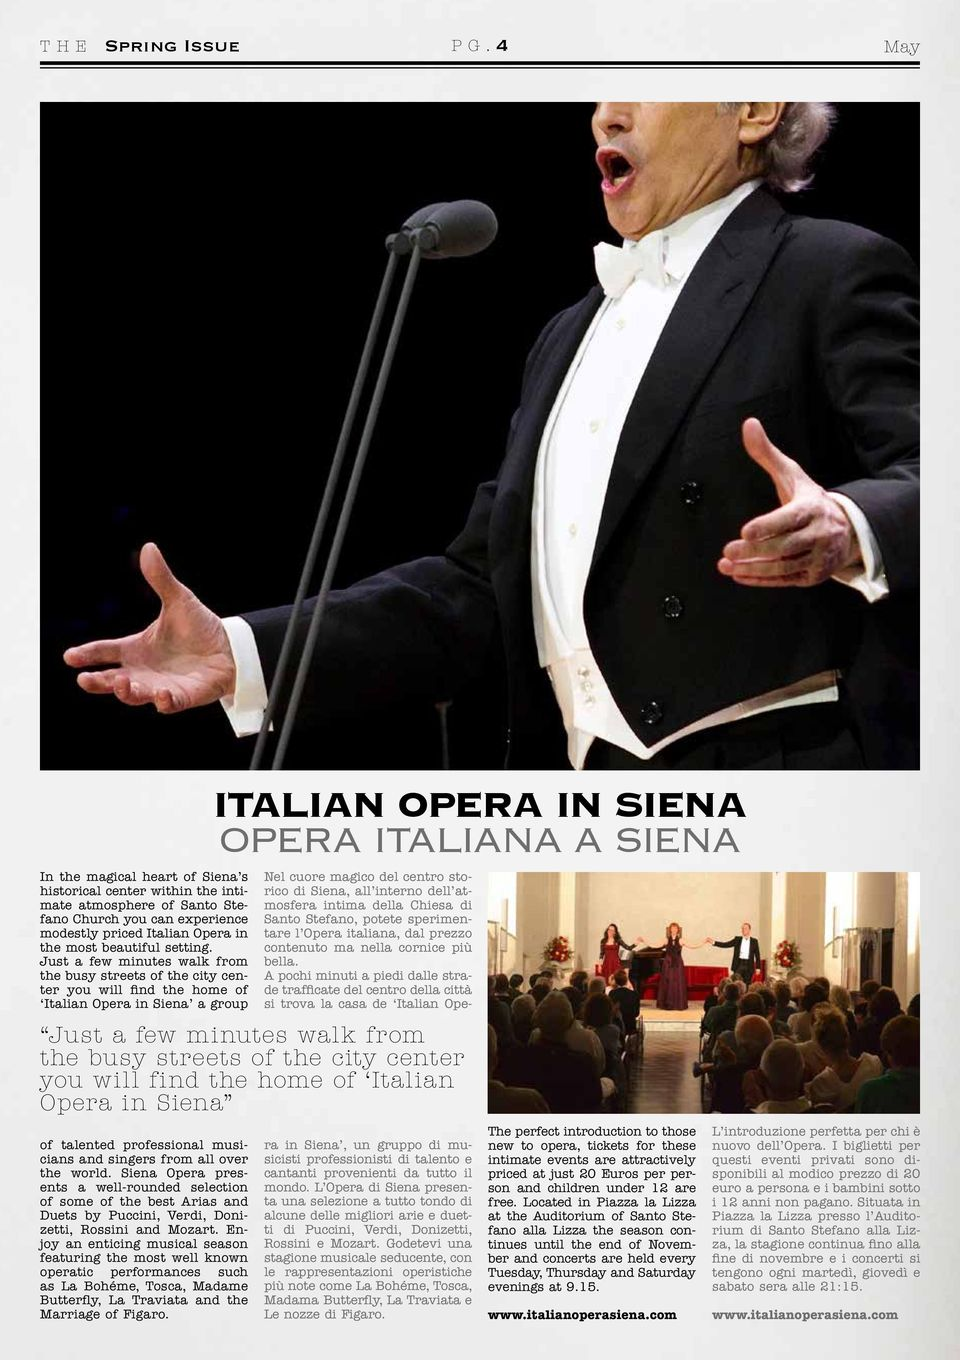 Just a few minutes walk from the busy streets of the city center you will find the home of Italian Opera in Siena a group of talented professional musicians and singers from all over the world.